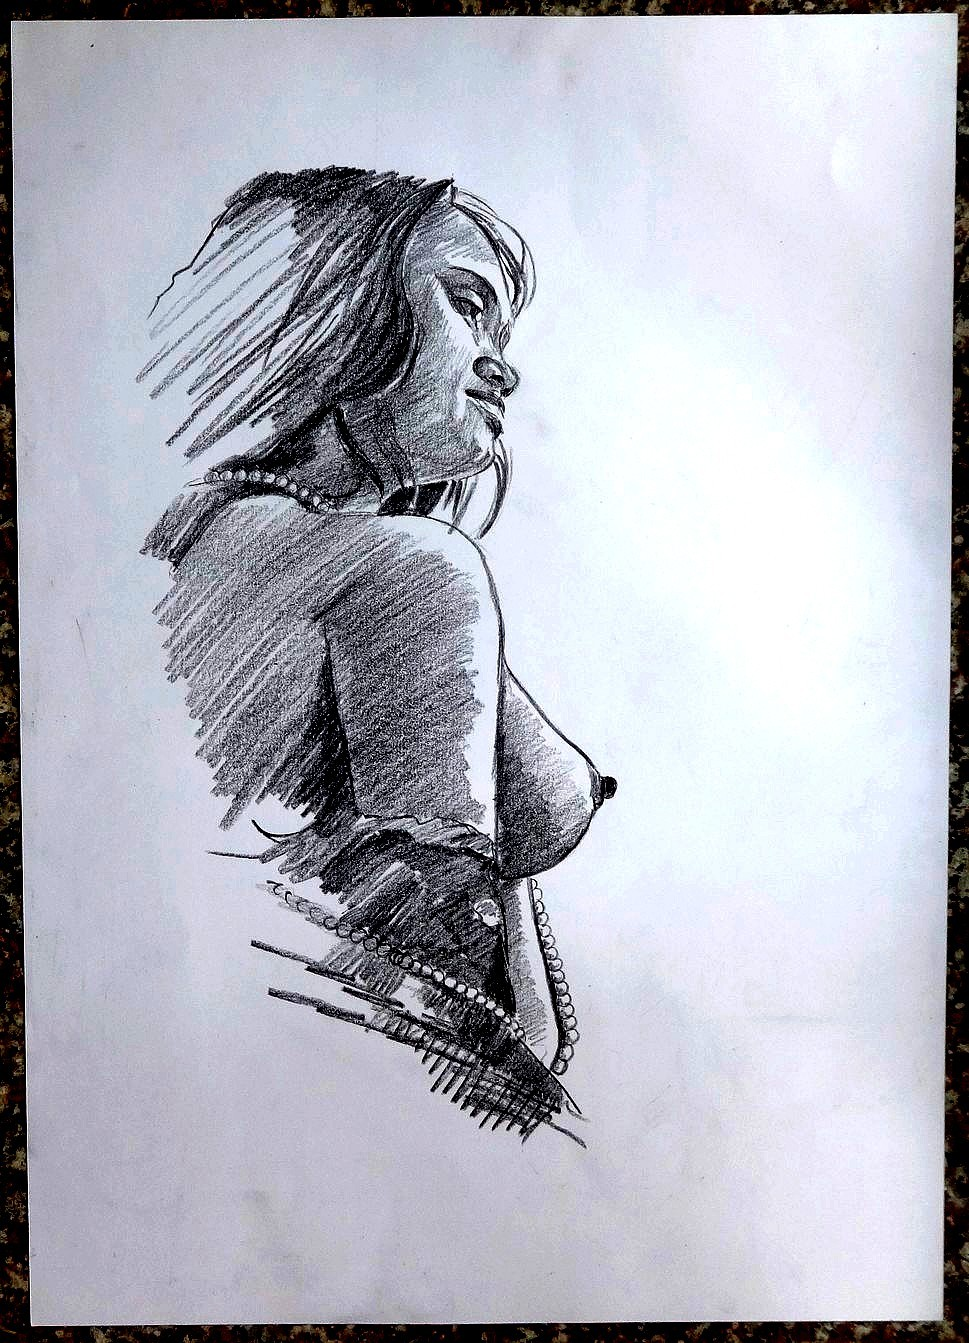 Details about indian nude beauty pencil drawing on card 11 x 16 5